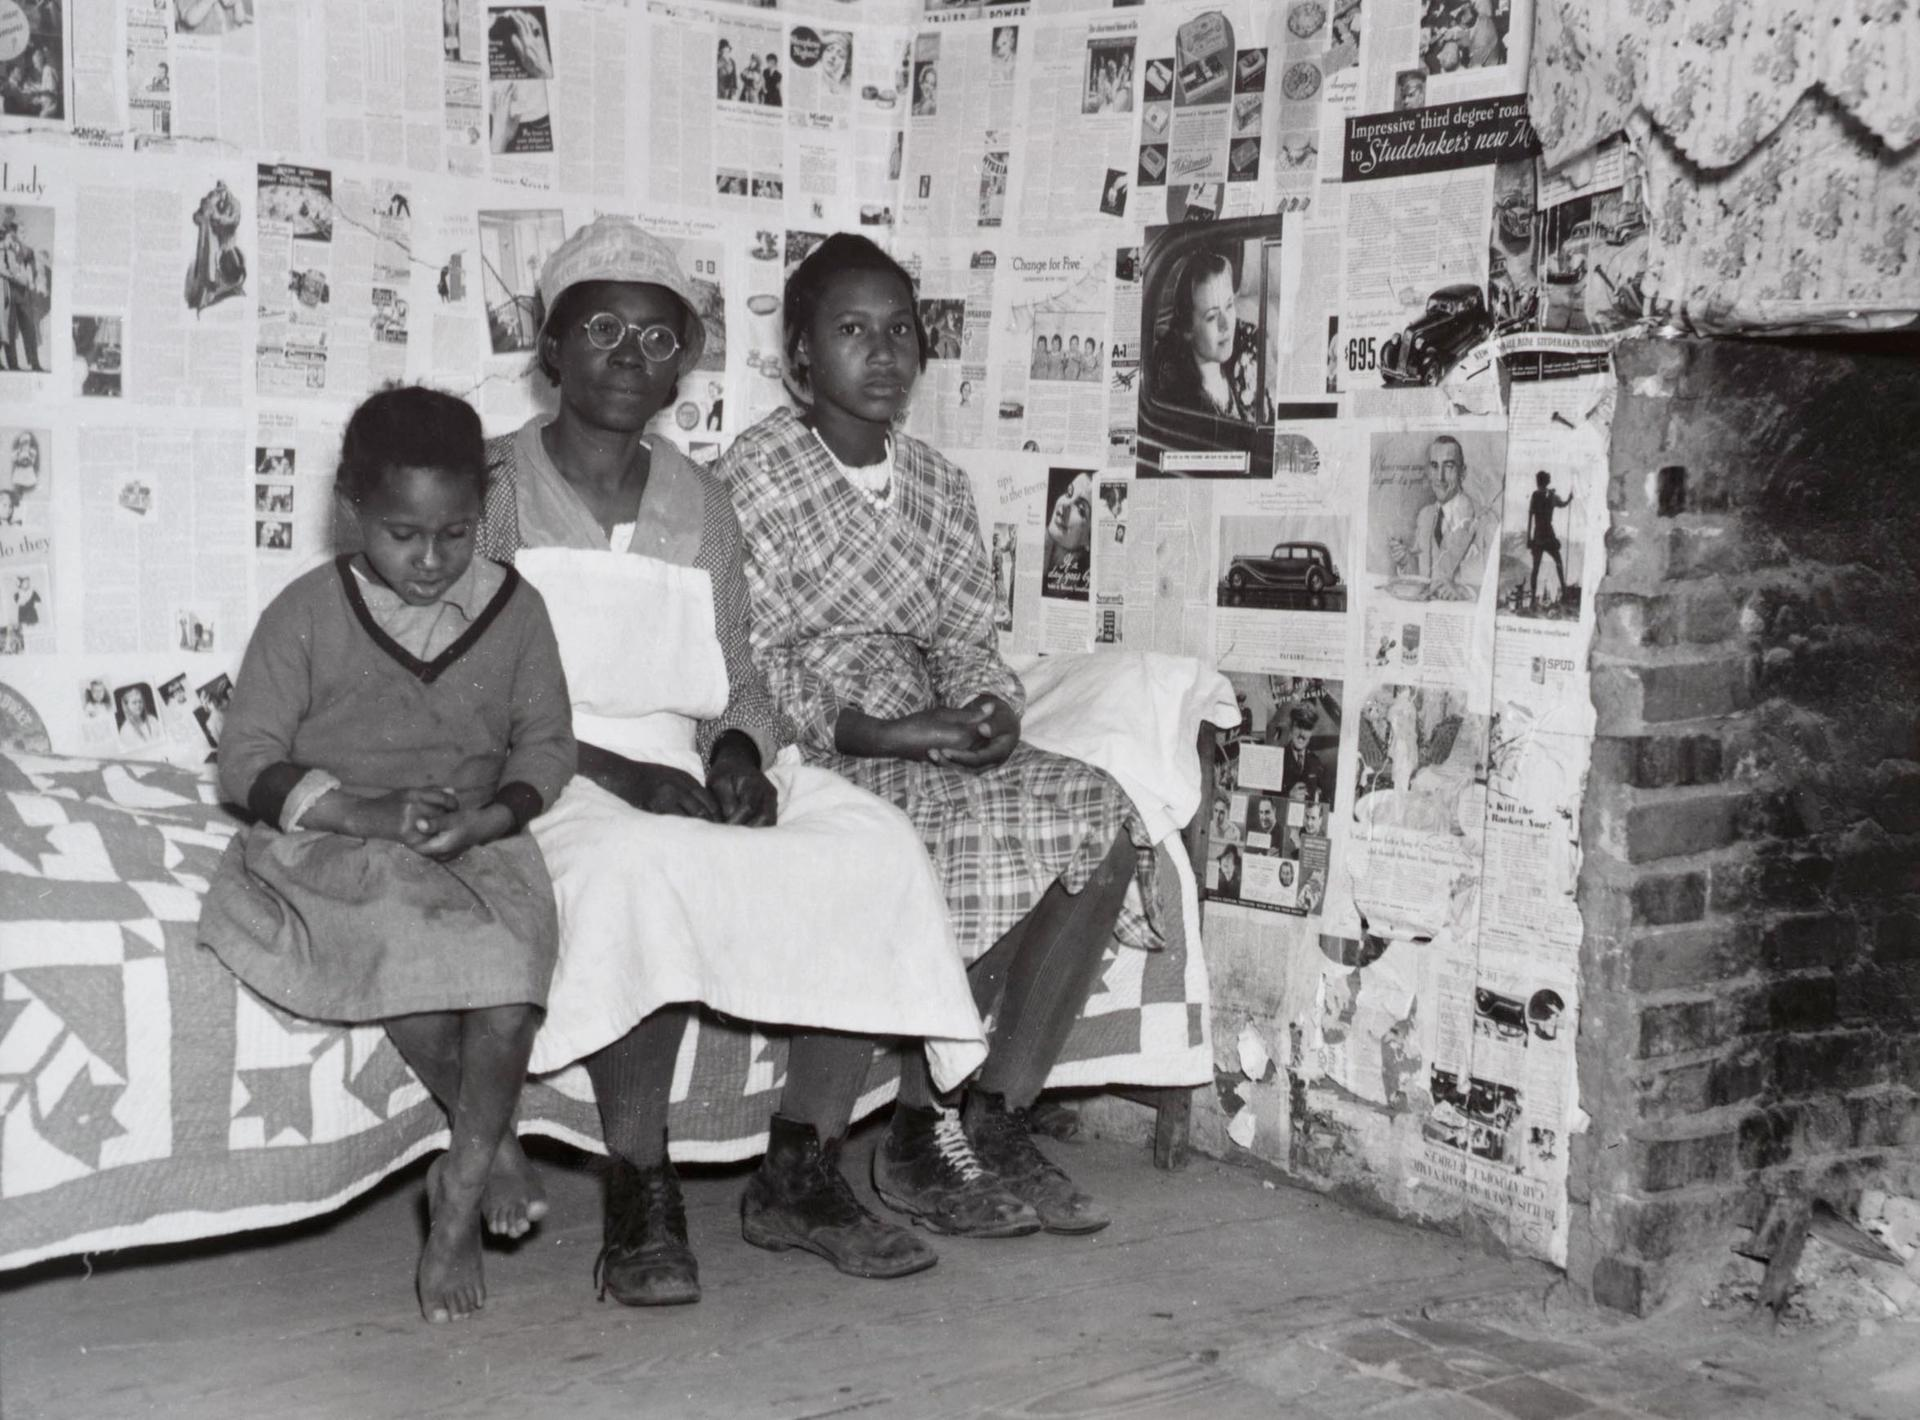 Gee's Bend artist Lucy Mooney and granddaughters Lucy P. Pettway and Bertha Pettway on a bed in Lucy's house, Gee's Bend, Alabama, 1937 Arthur Rothstein. Farm Security Administration/Office of War Information Collection, Prints and Photographs Division, Library of Congress.